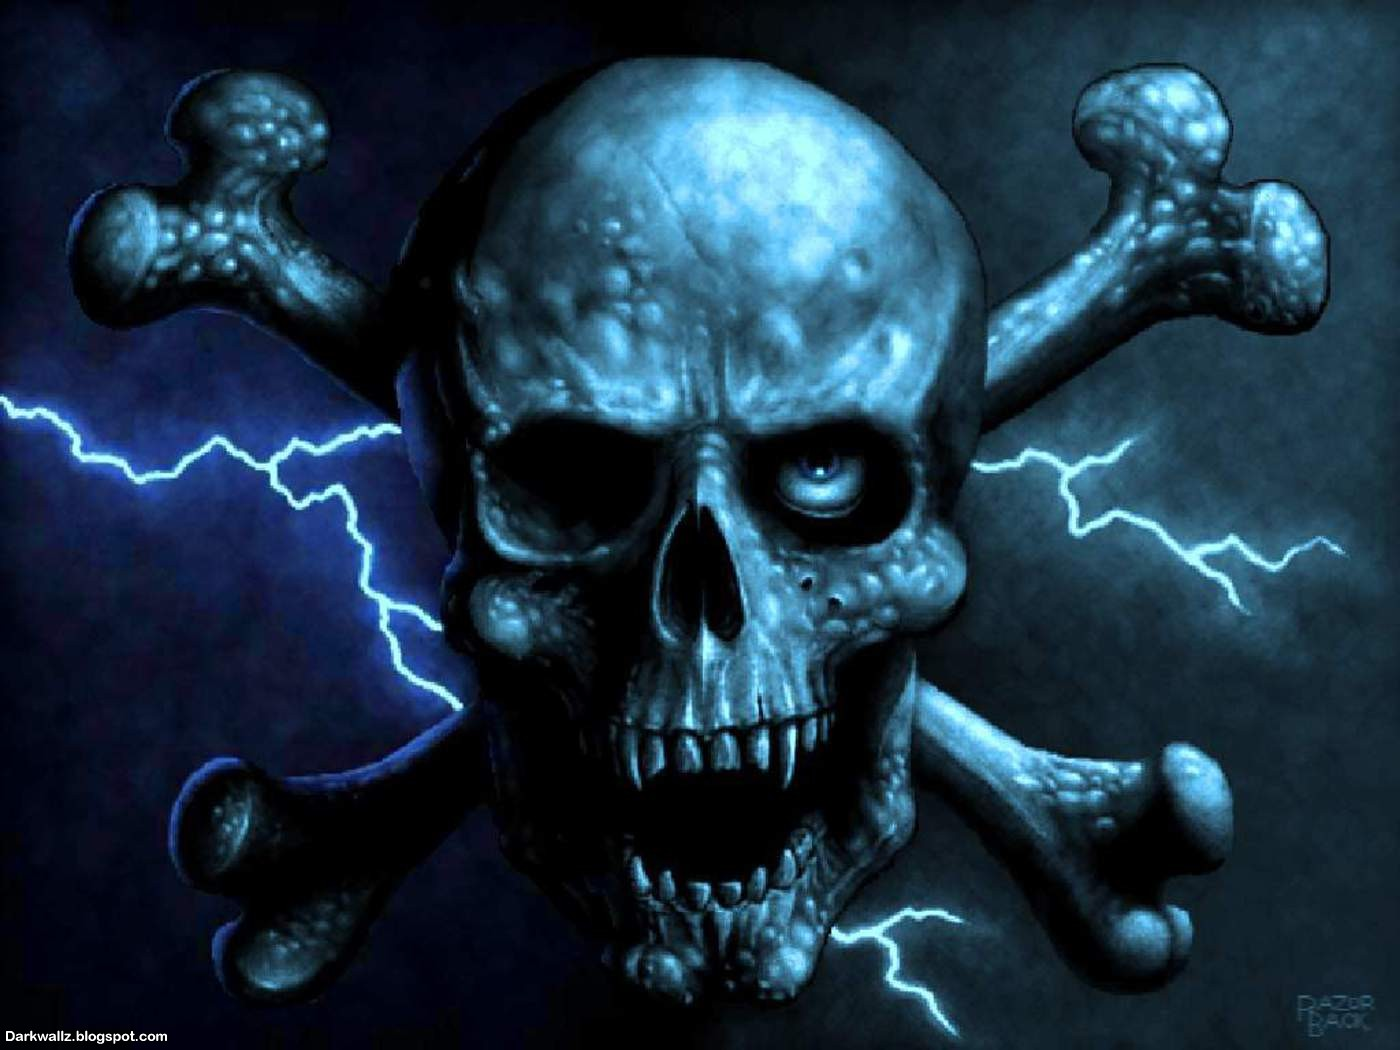 Scary Skulls Wallpaper wallpaper Scary Skulls Wallpaper hd 1400x1050